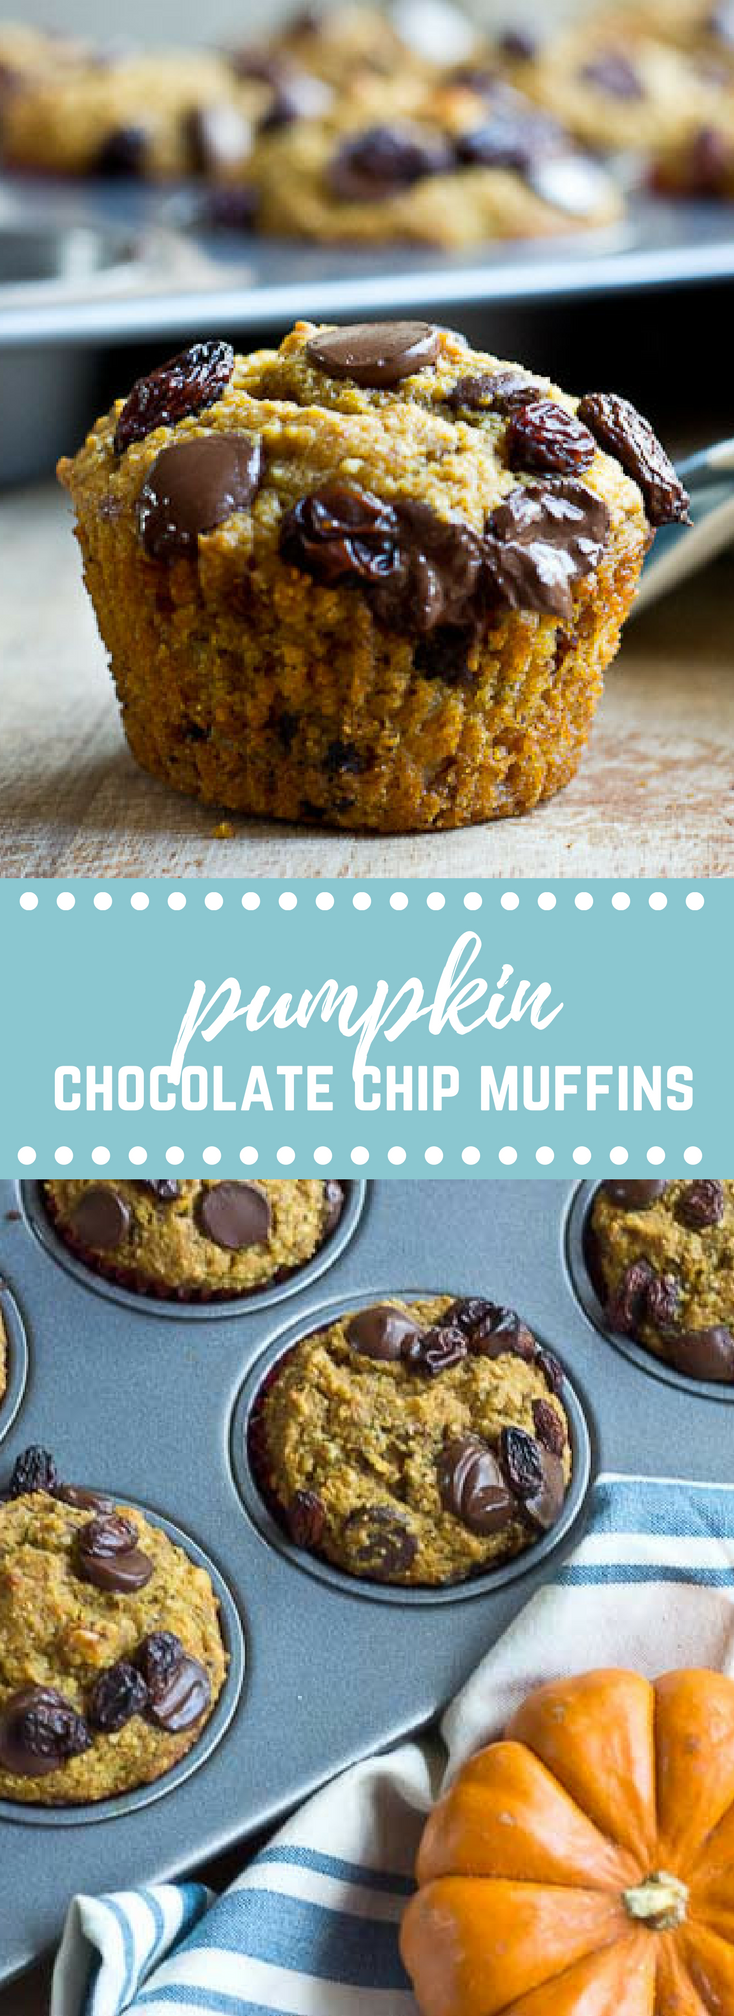 Pumpkin Chocolate Chip Lactation Muffins | Love & Zest